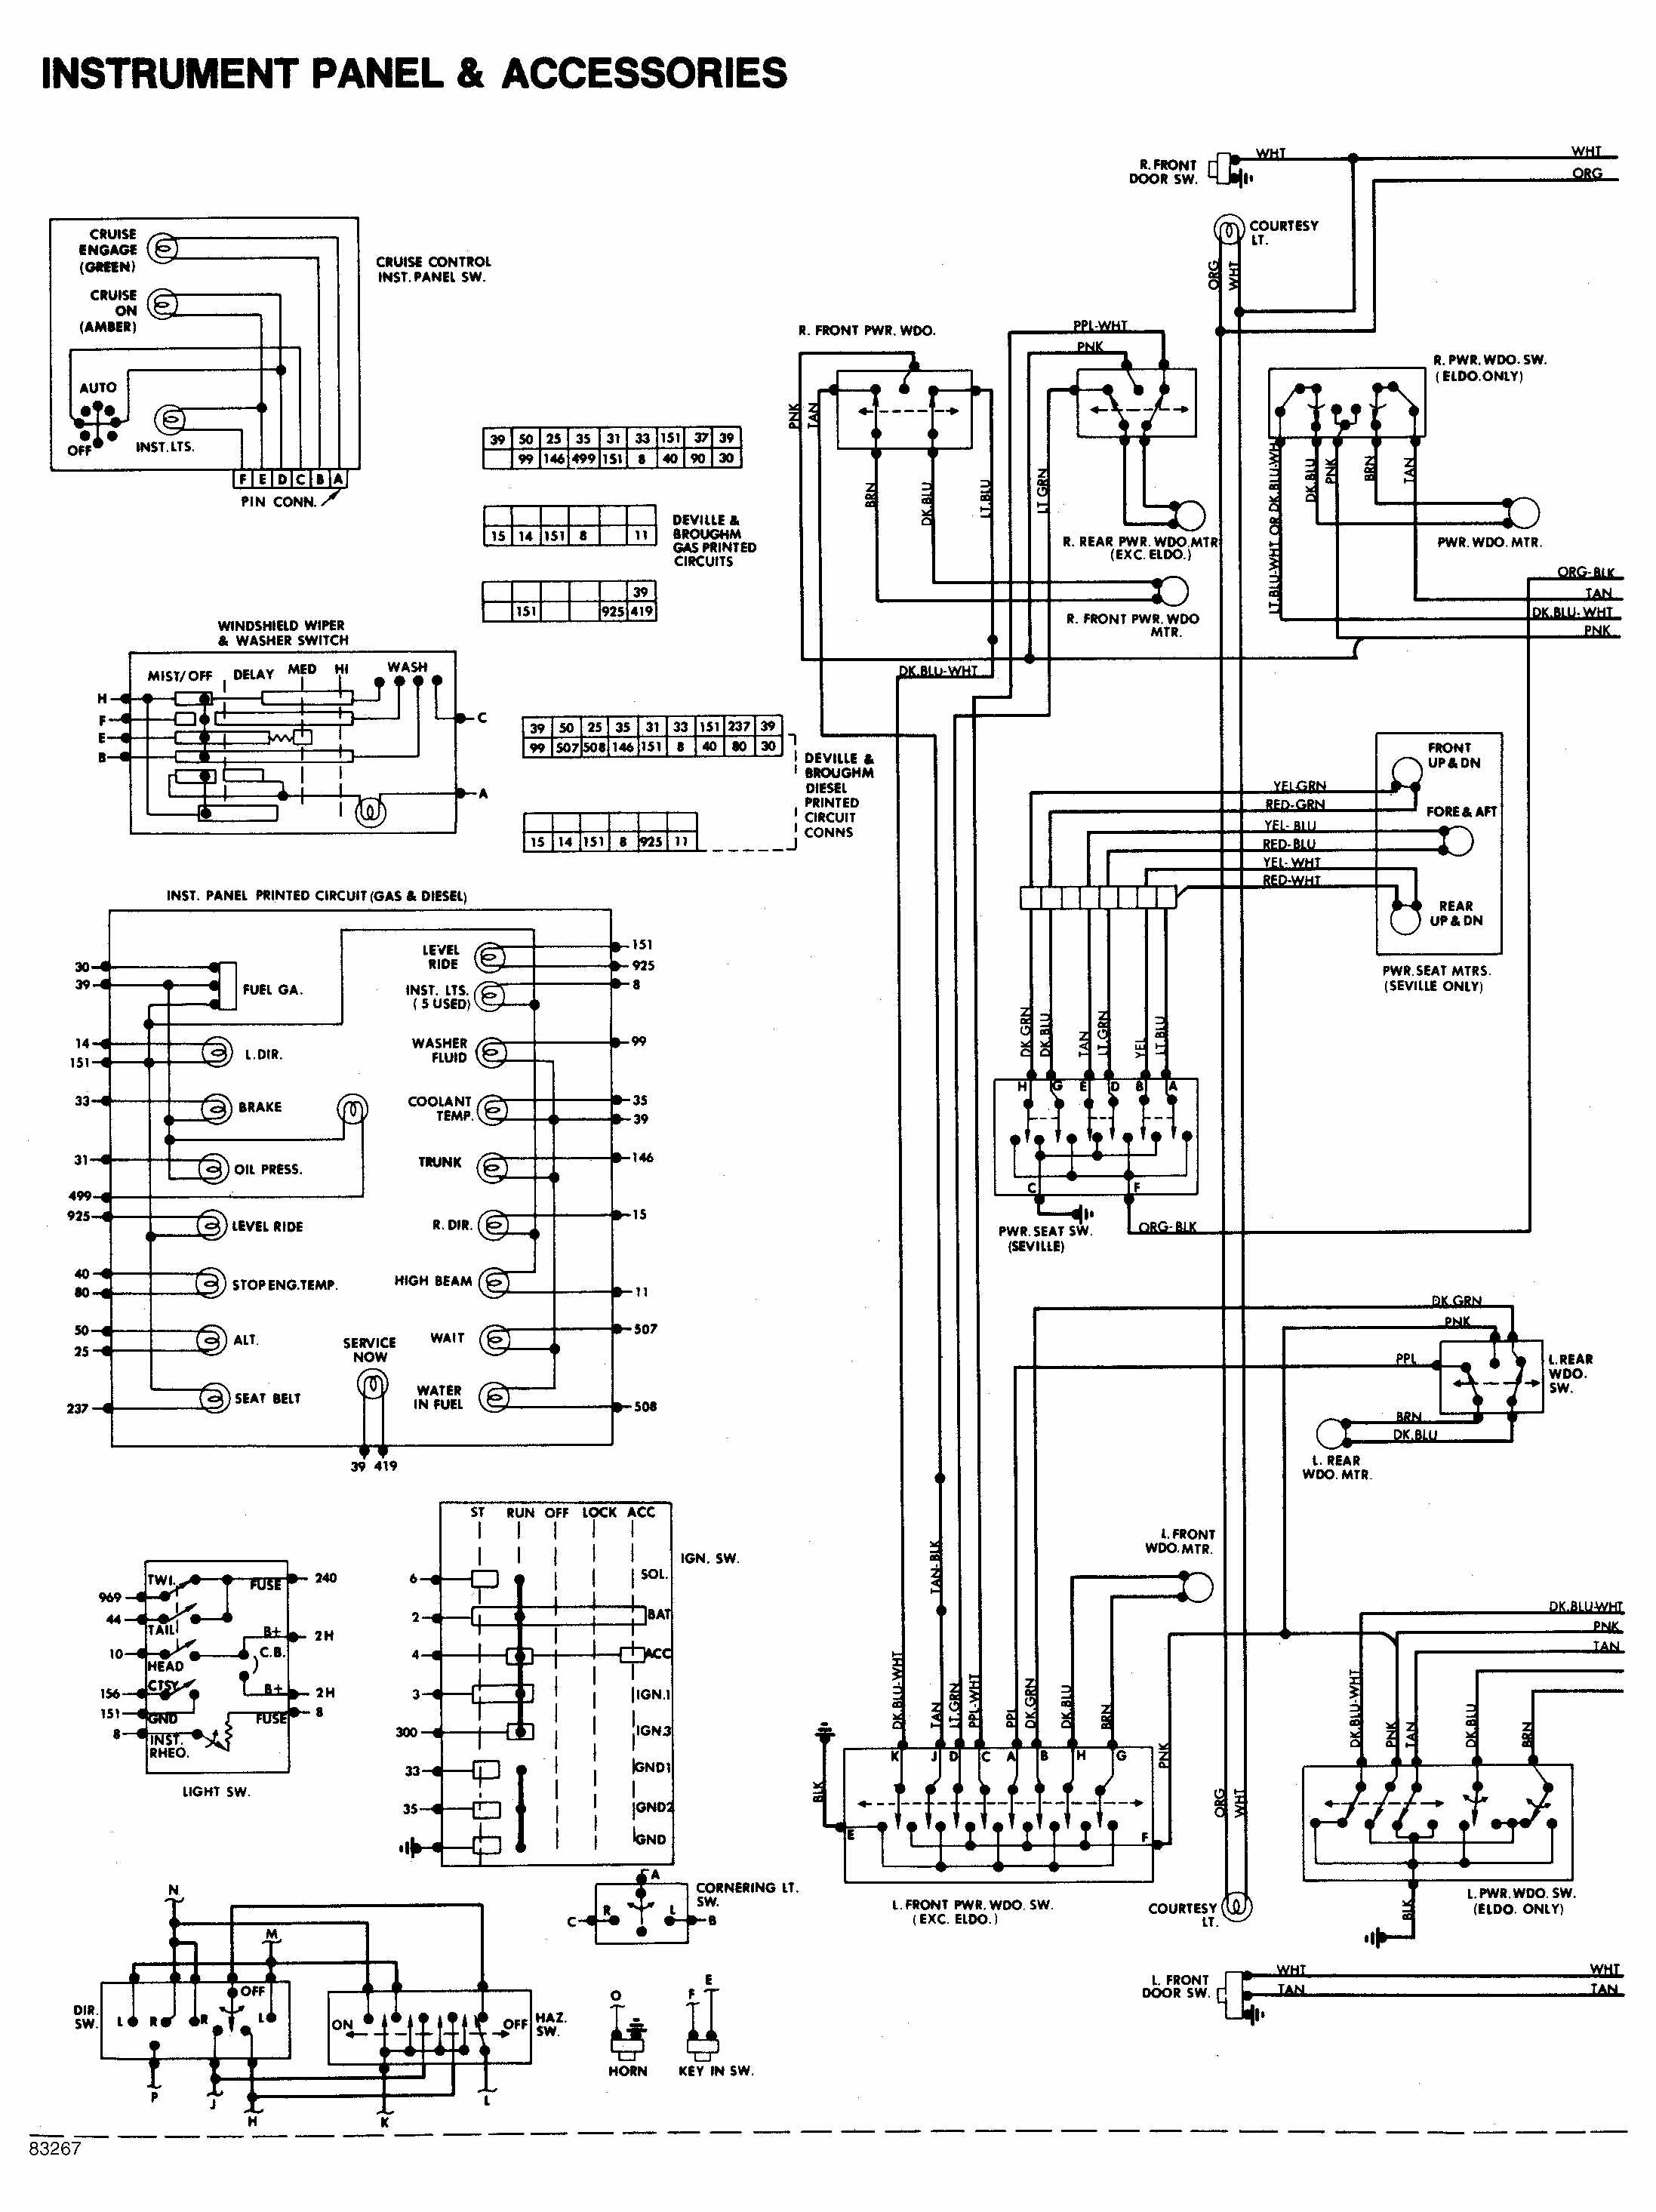 instrument panel and accessories wiring diagram of 1984 cadillac deville cadillac wiring harness ram truck wiring harness \u2022 wiring diagrams 68 gmc wiring diagram at bayanpartner.co